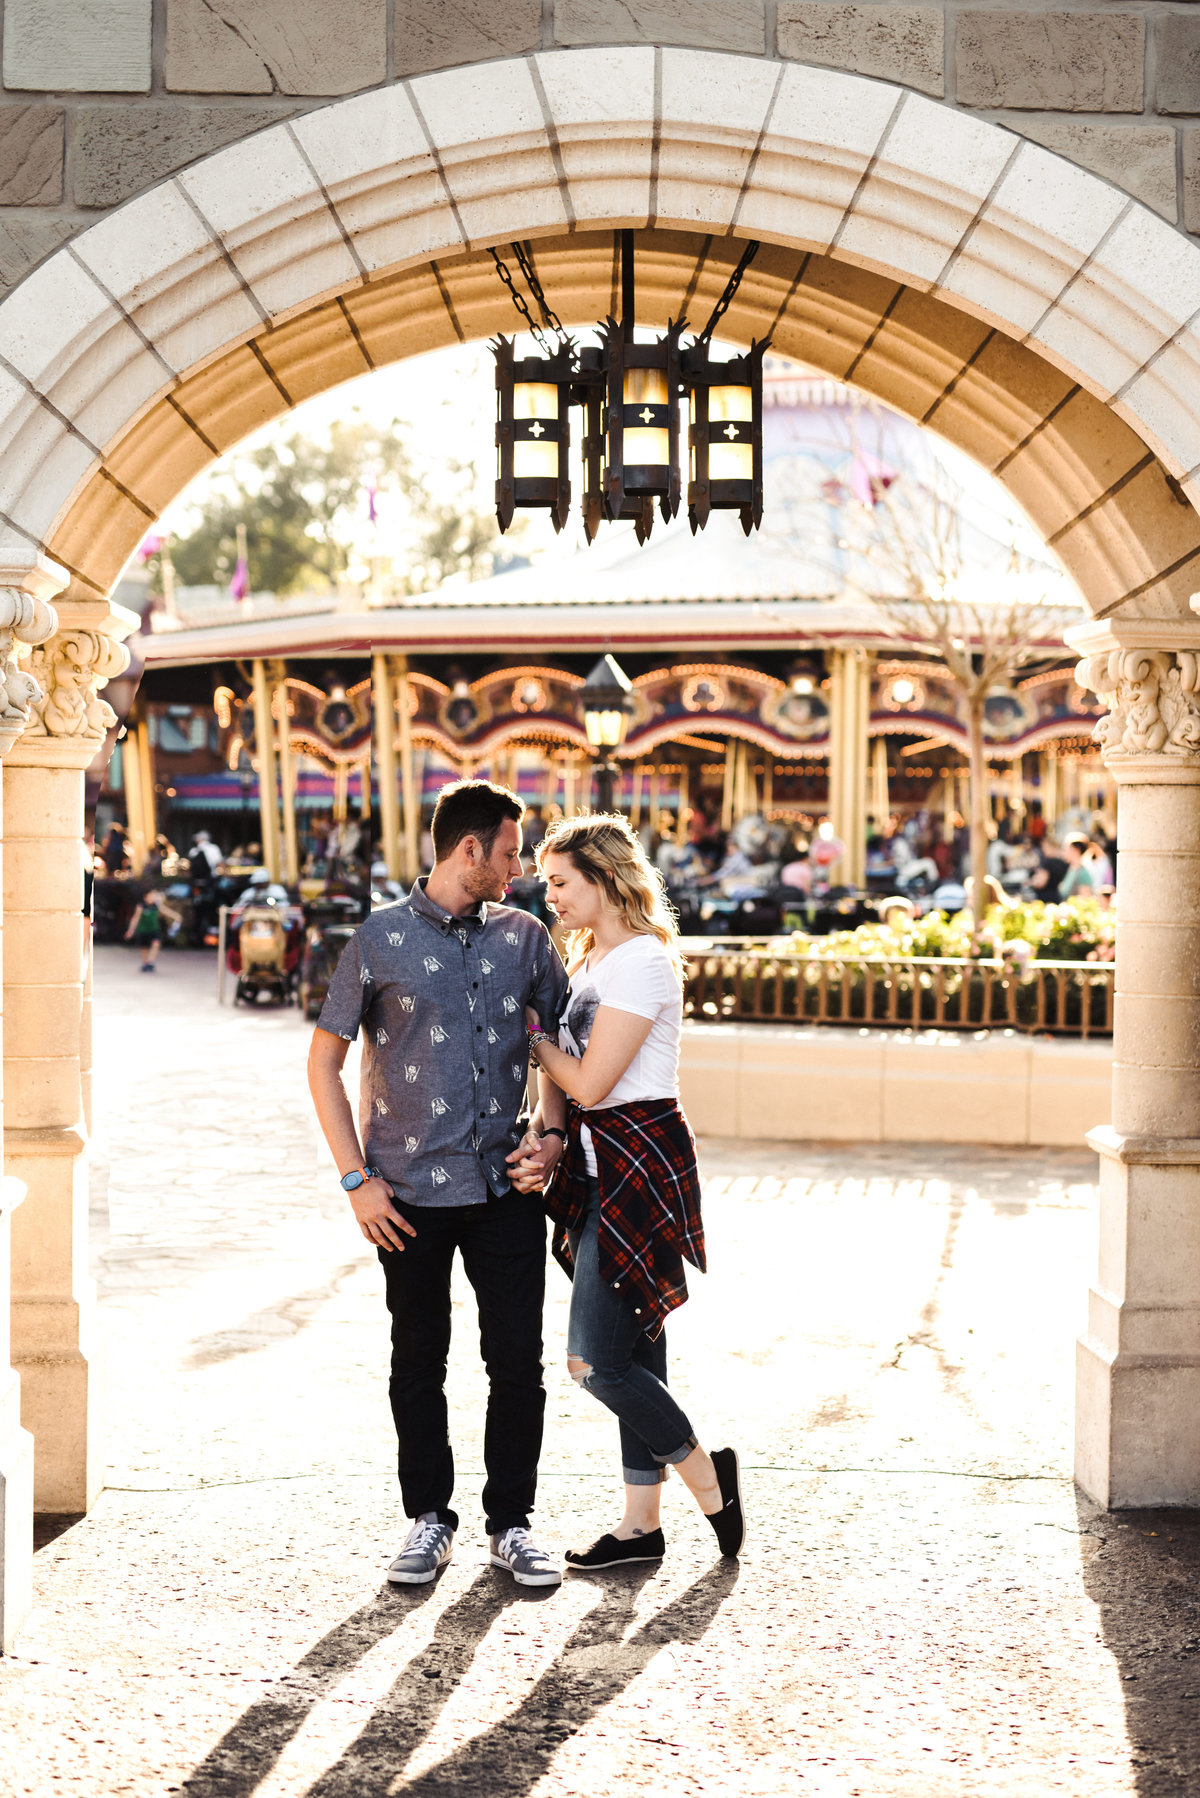 Ally & Brett's Disney Engagement Session (170 of 243)